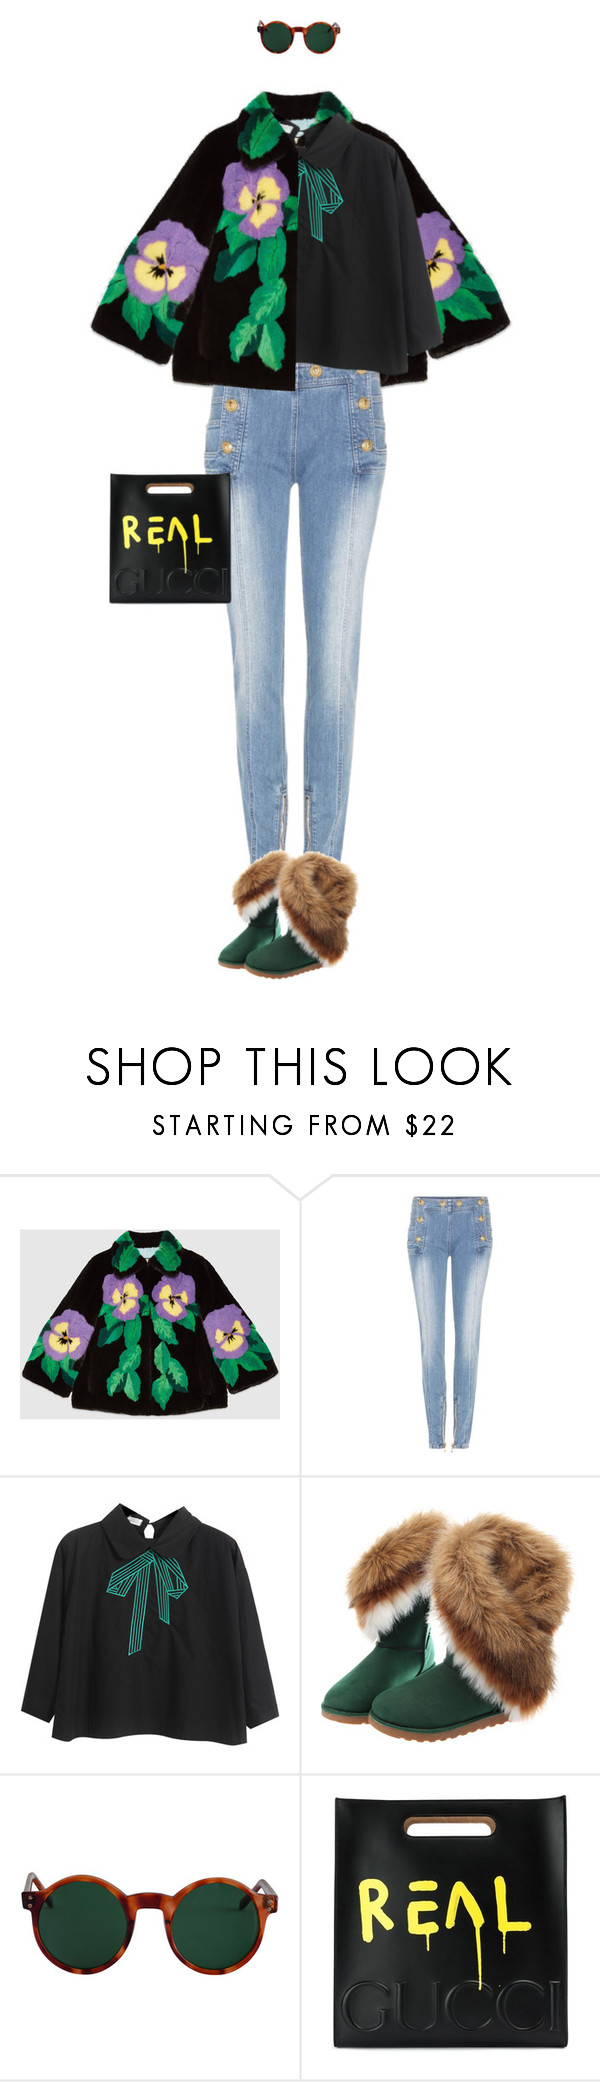 """eva 0314"" by evava-c ❤ liked on Polyvore featuring Gucci, Balmain, Chicnova Fashion and American Apparel"